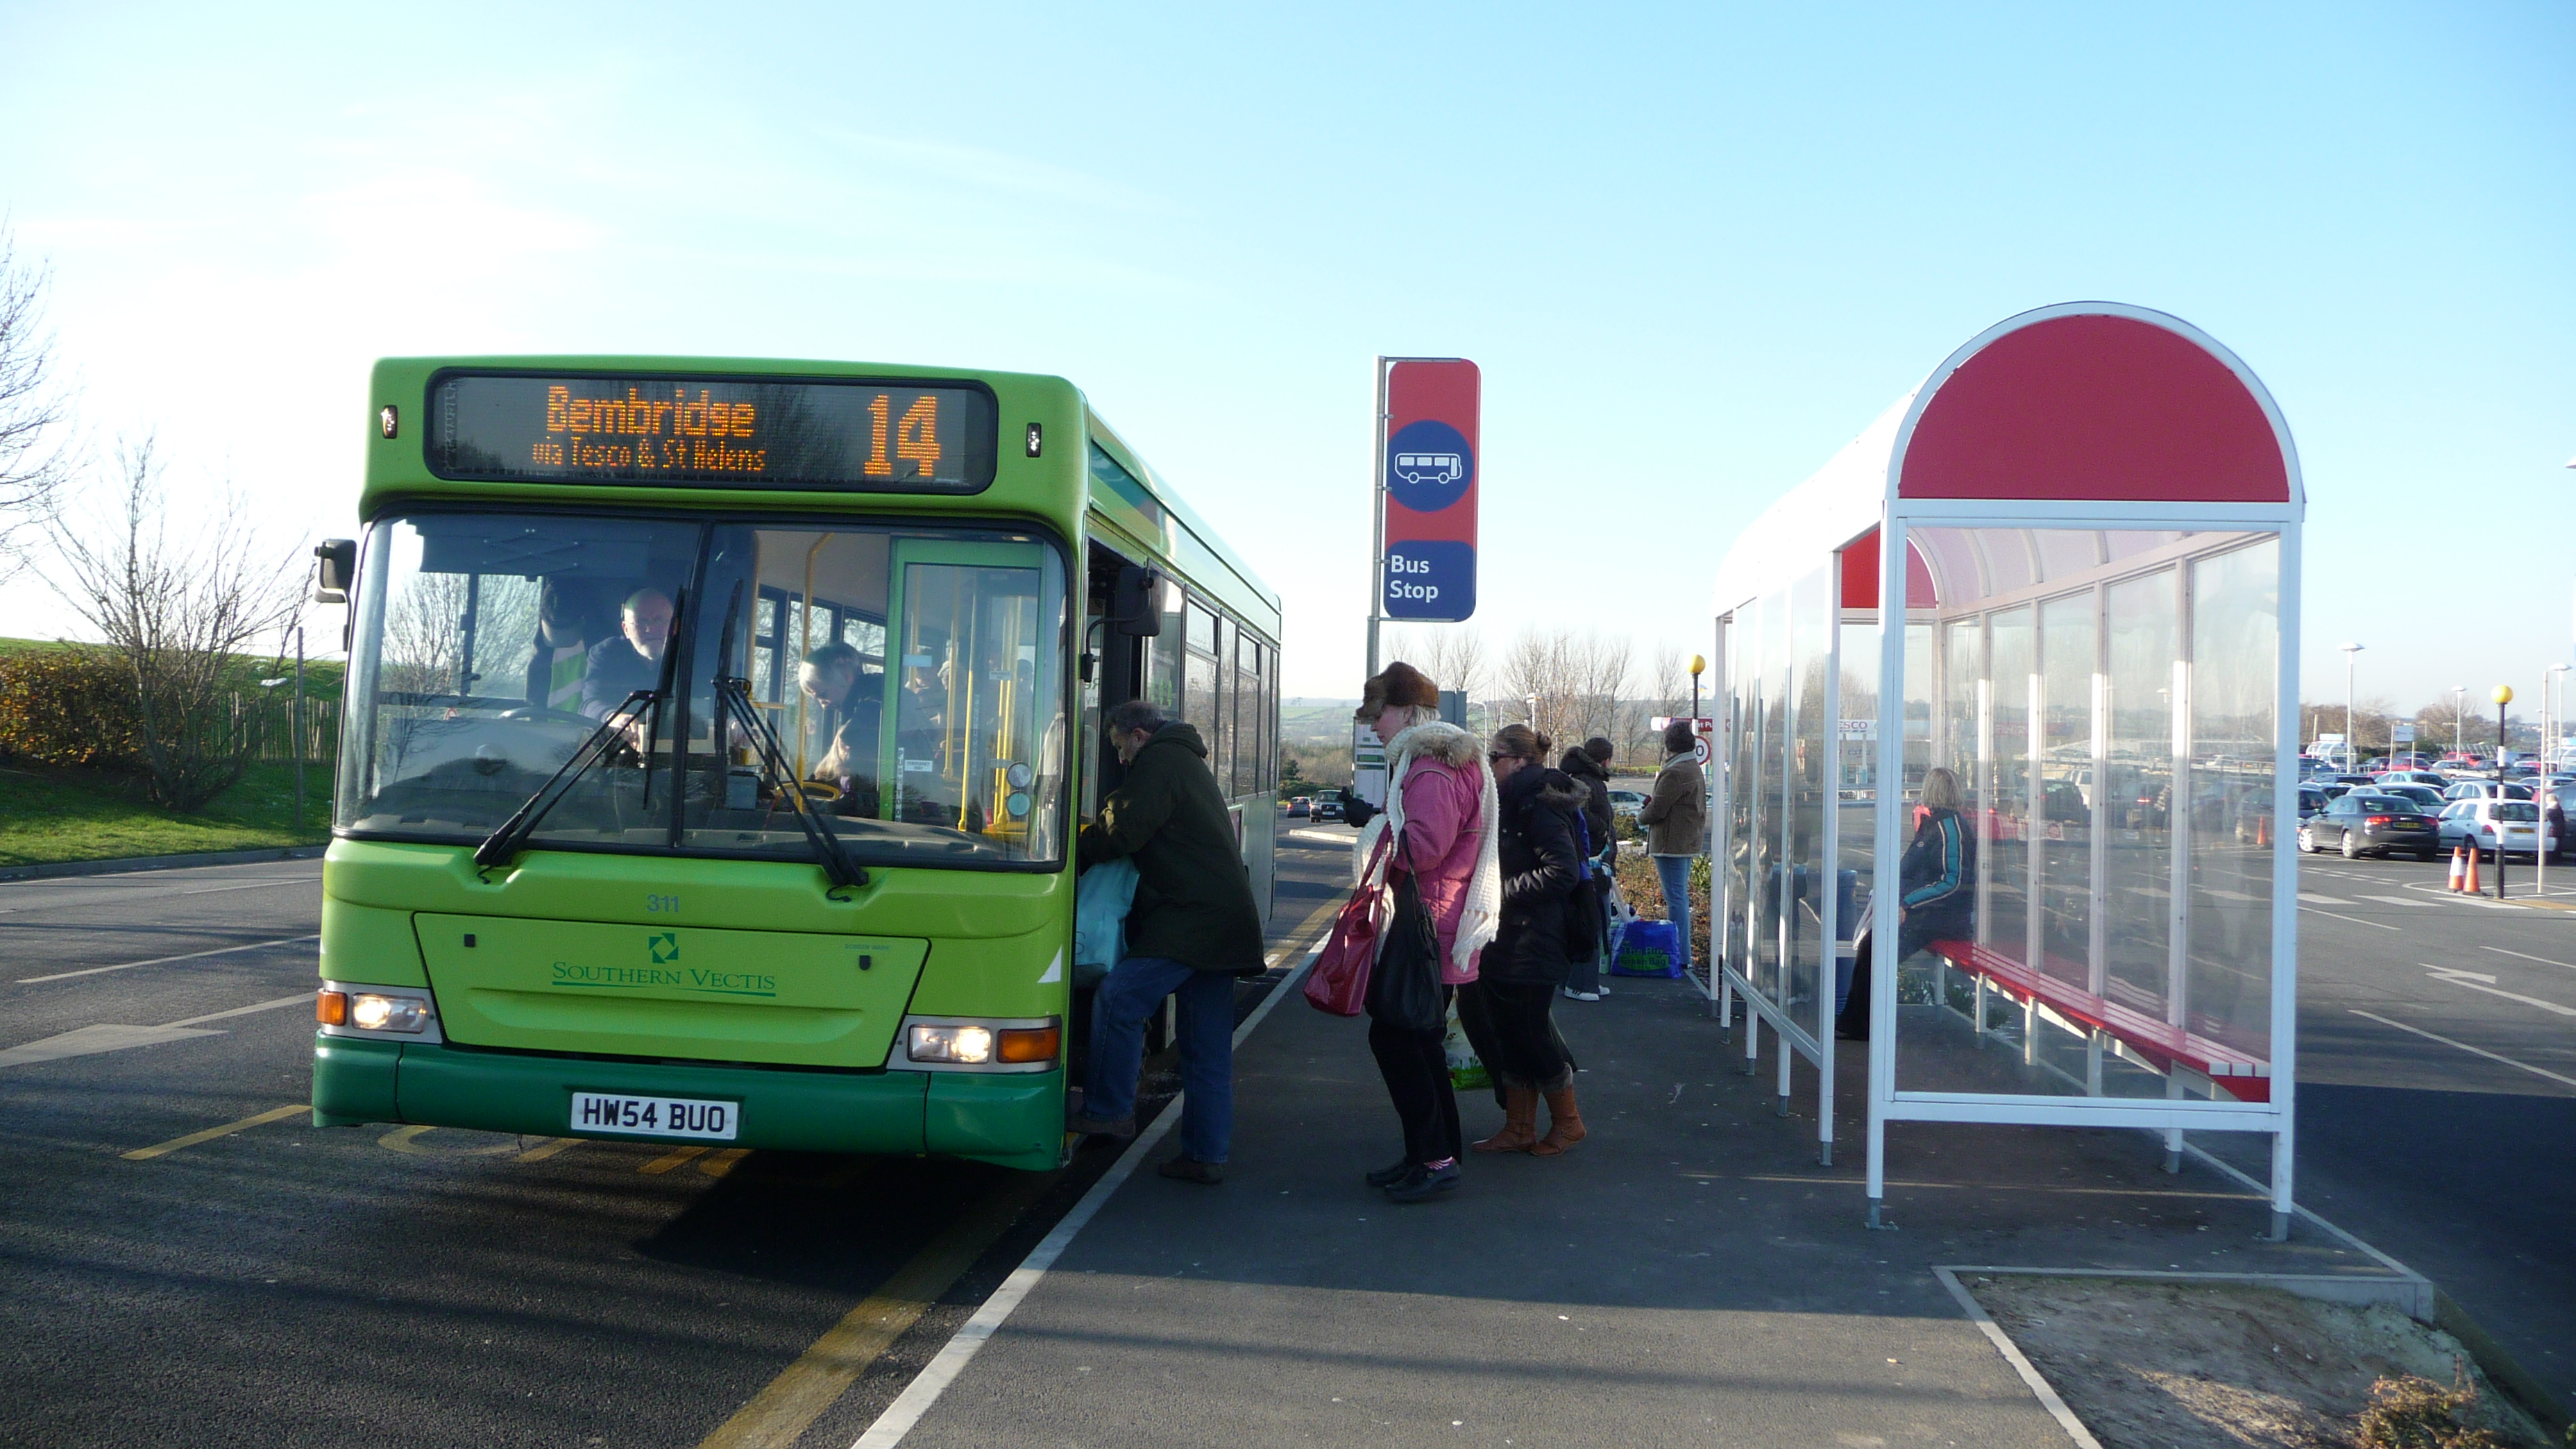 Southern_Vectis_311_HW54_BUO_and_Ryde_Tesco_bus_stop